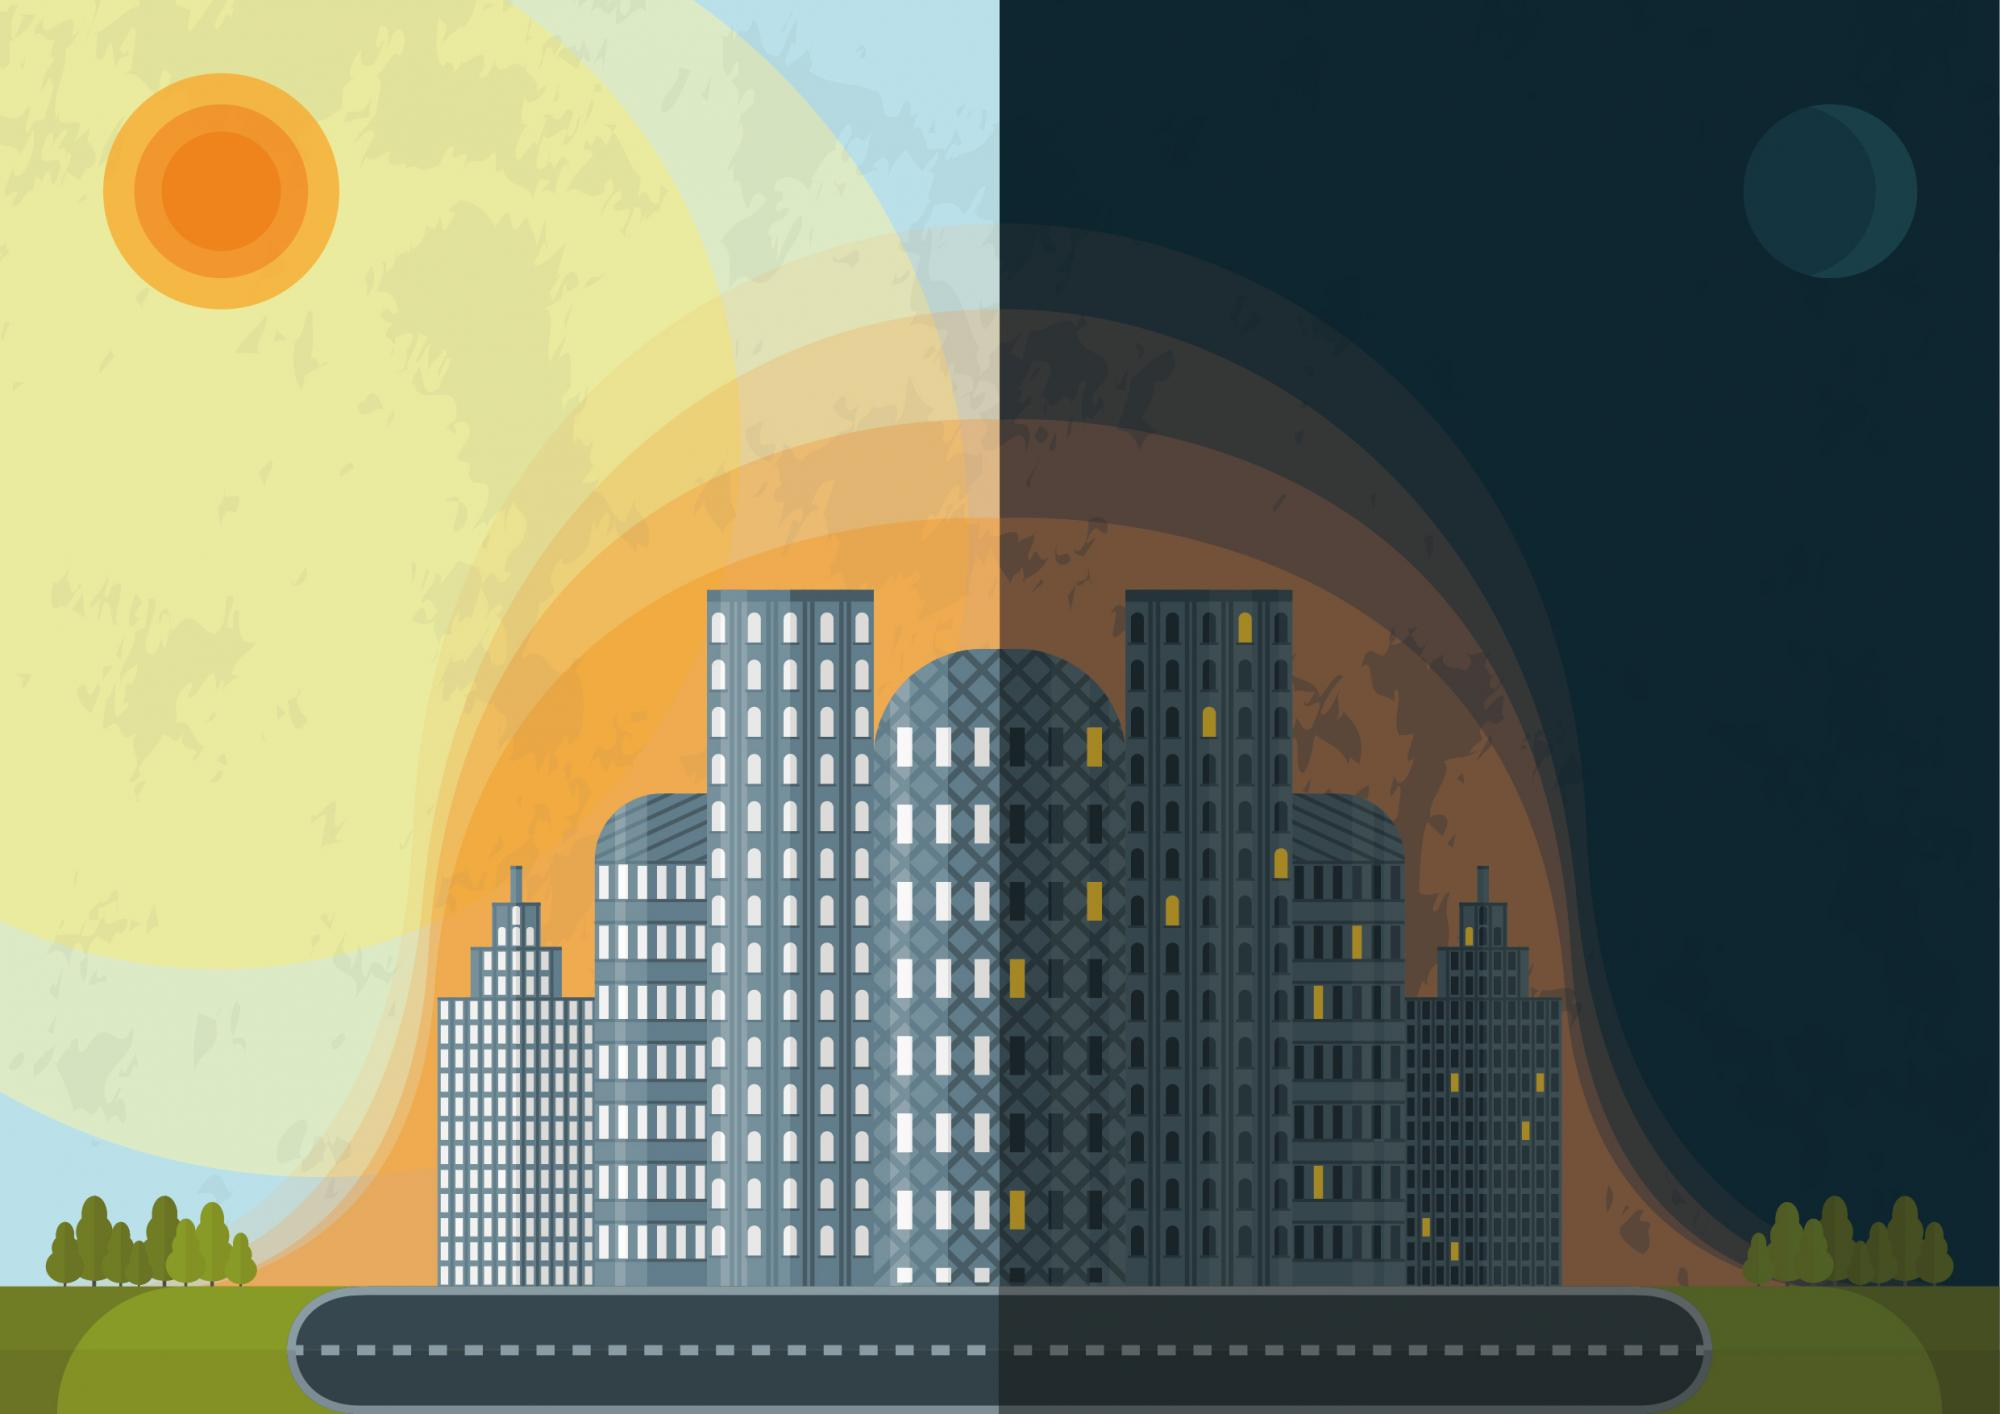 Buildings retain heat, and at night they give off the heat they stored during the day to the surrounding air, keeping temperatures high overnight. This is called the urban heat island effect, and it's something desert cities battle as their populations gr